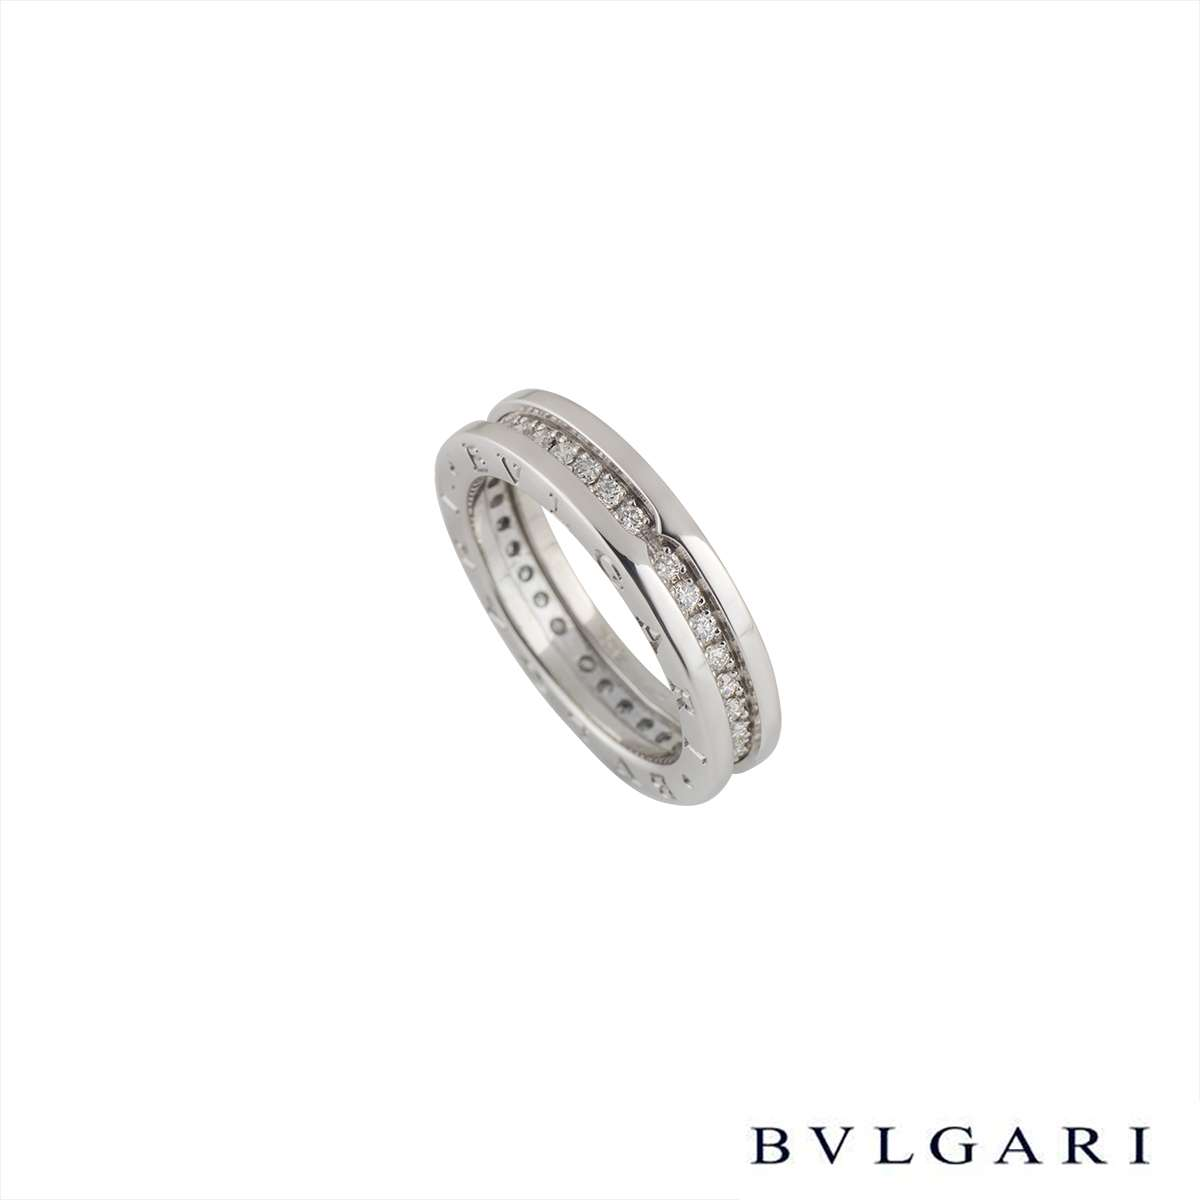 Bvlgari 18k White Gold Diamond Set B.zero1 Ring AN850656